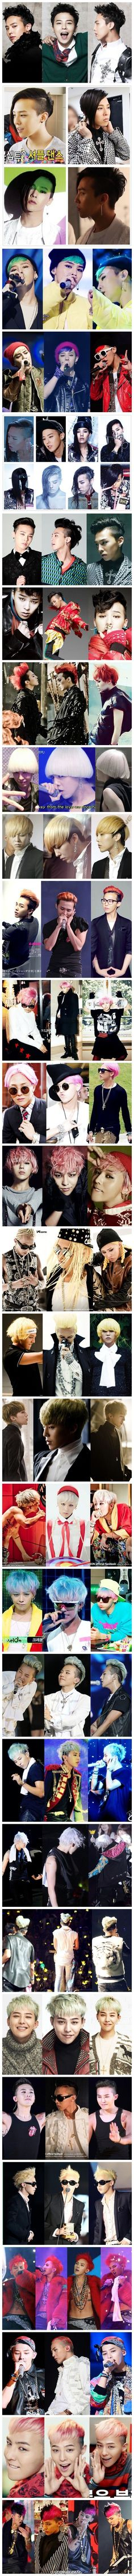 25 Ideas for hair color asian men g dragon – self-developing-cus Daesung, Vip Bigbang, Block B, Vixx, G Dragon Hairstyle, Men's Hairstyle, Kpop, Sung Lee, Lee Hi